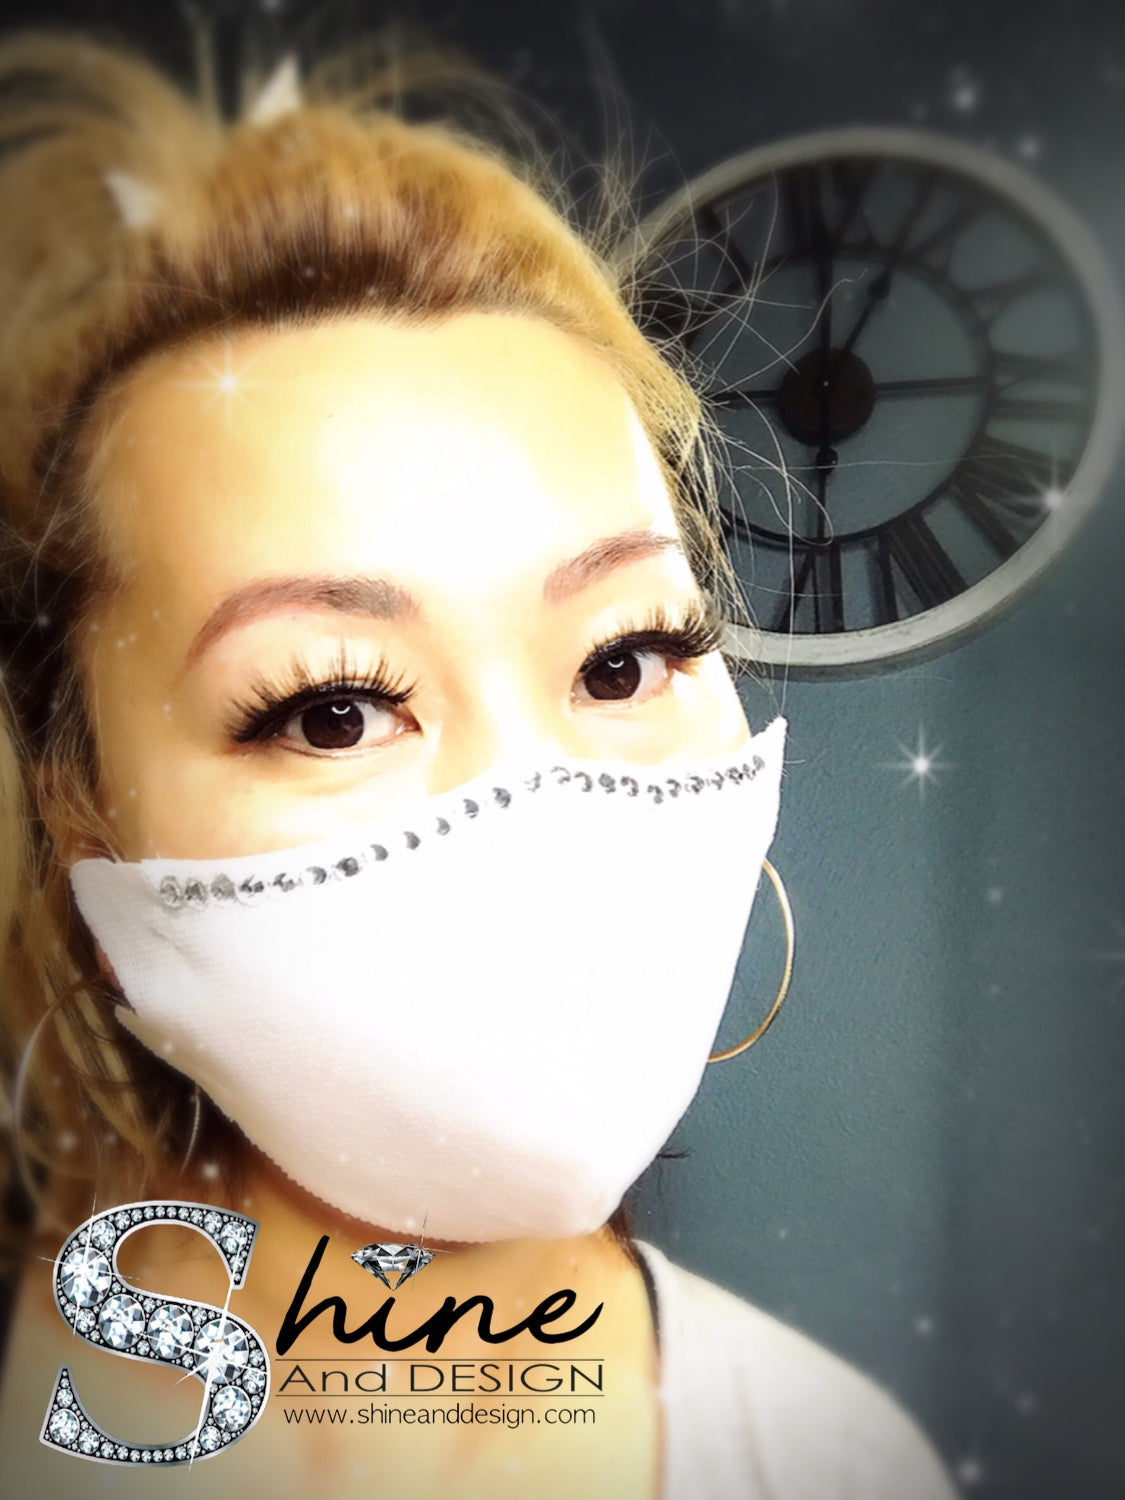 SHINE- Single 100% Crystal Edition -Reusable Face Mask Protection- 6 Colors Available